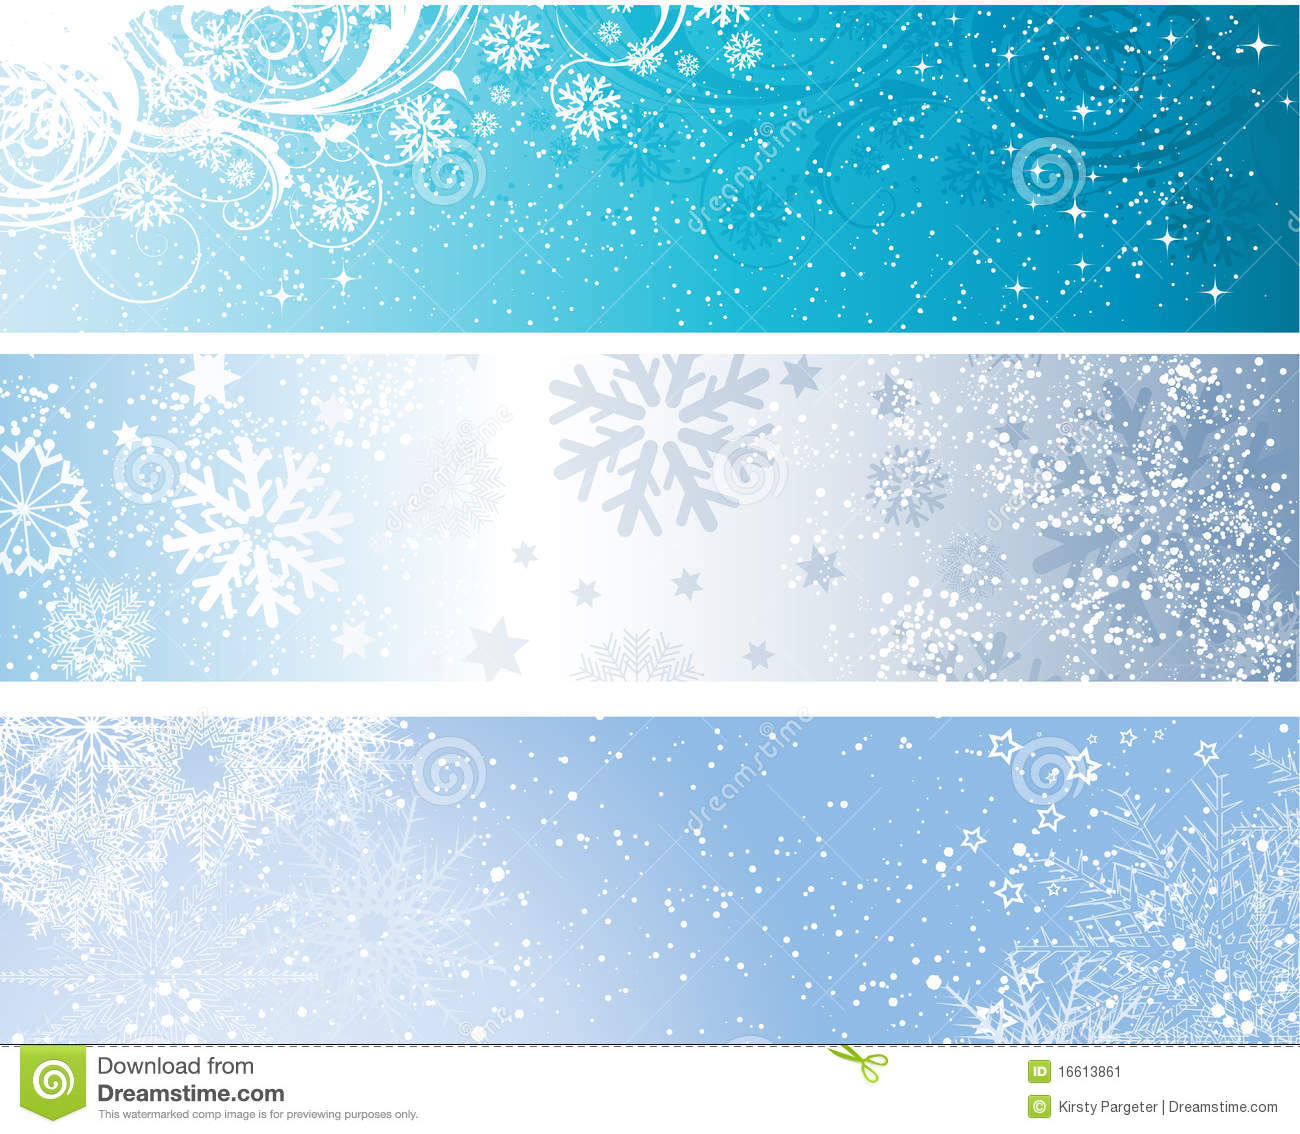 Winter banners stock vector. Illustration of star, grunge ...